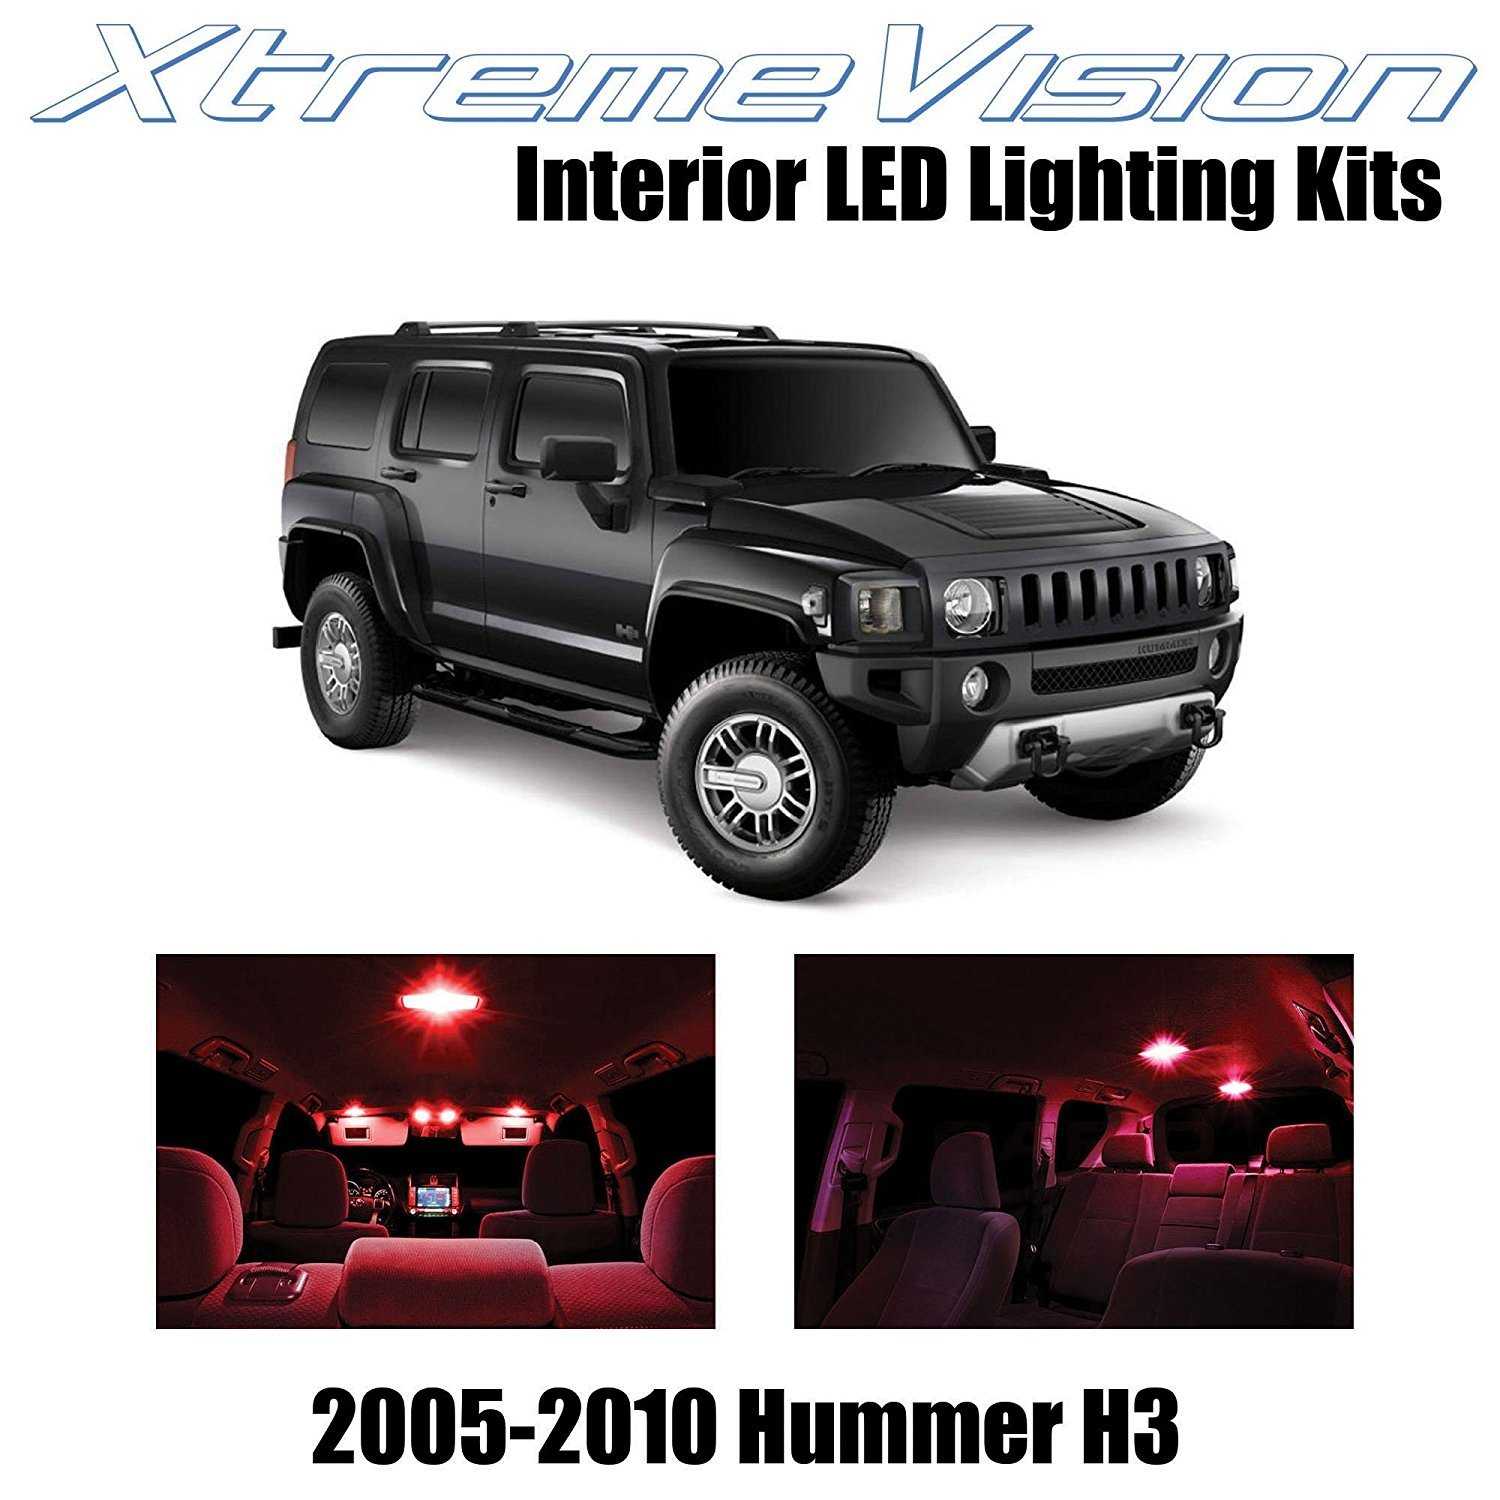 XtremeVision LED for Hummer H3 2005-2010 (15 Pieces) Red Premium Interior LED Kit Package + Installation Tool